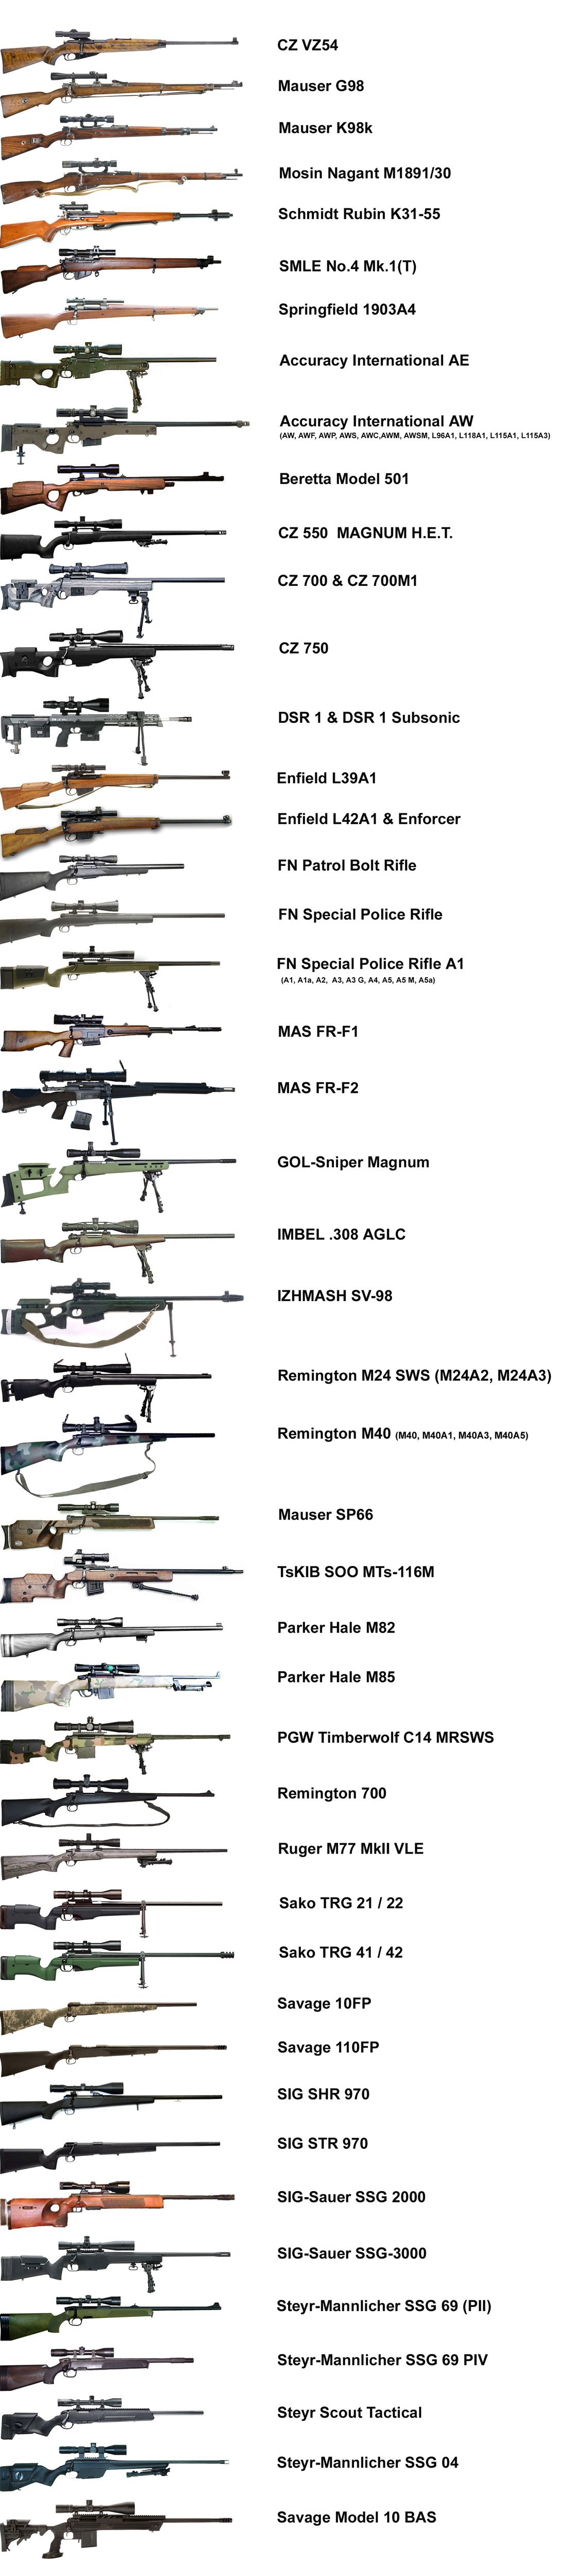 Sniper Rifles Awesome Things Pinterest Guns Firearms And Weapons To Shoot A Deer With Rifle Diagram I Have Two Of These Military Ammo Handgun